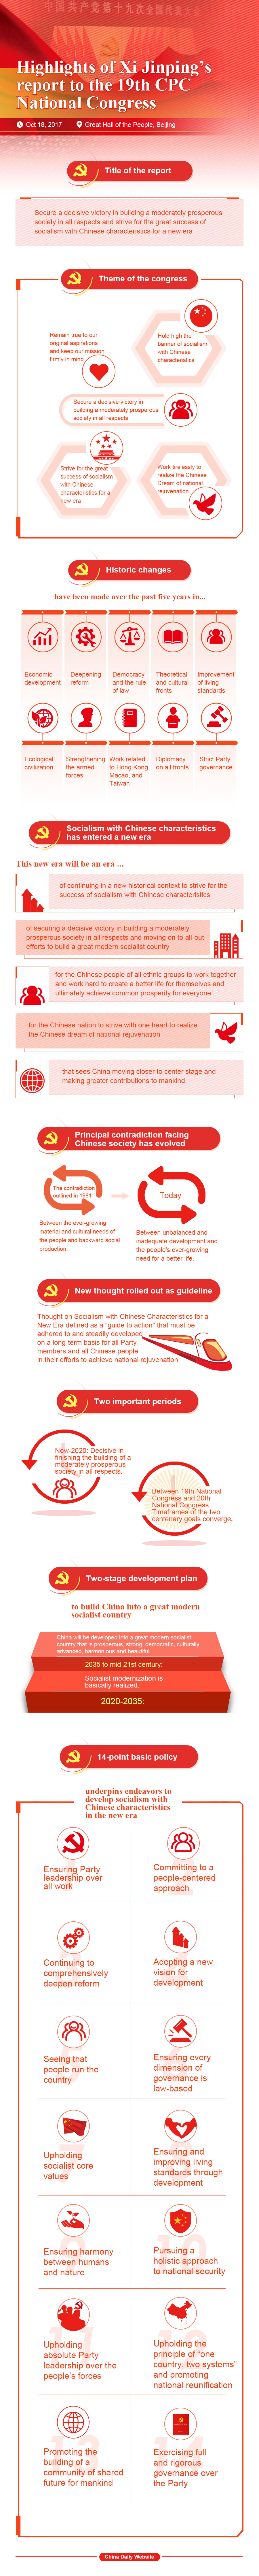 Graphics: Highlights of Xi's report to 19th CPC National Congress